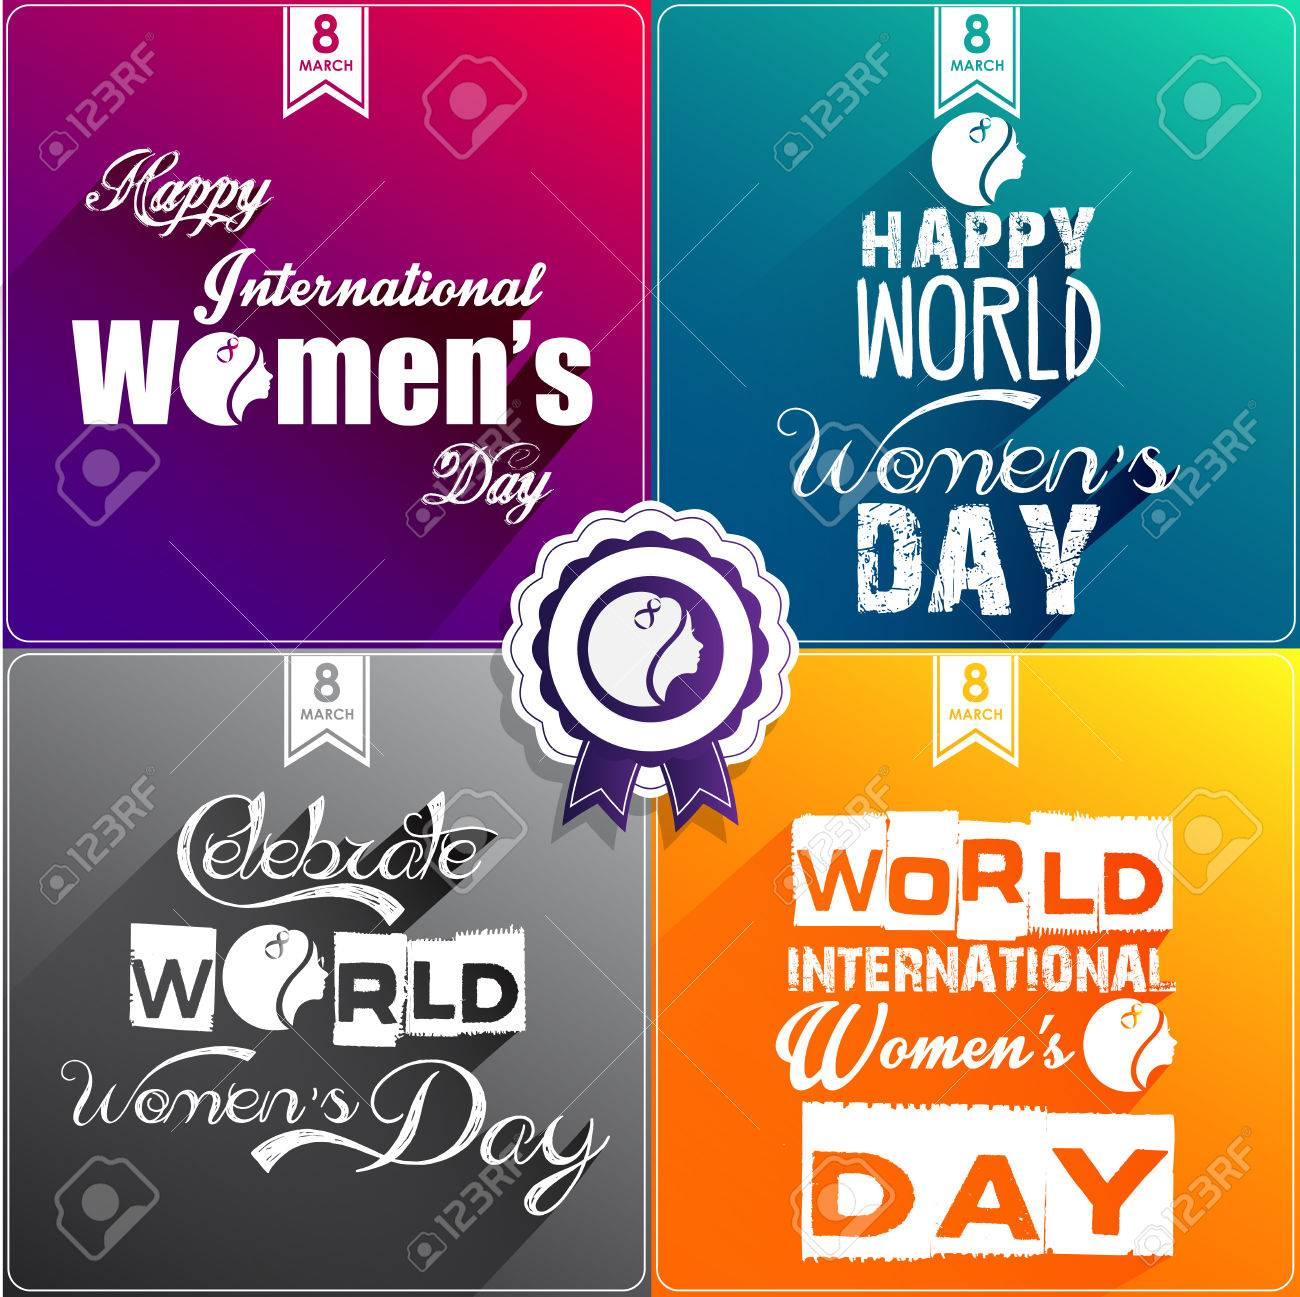 Happy Womens Day Flat Design Greeting Card Gift Card Wallpaper 1300x1297